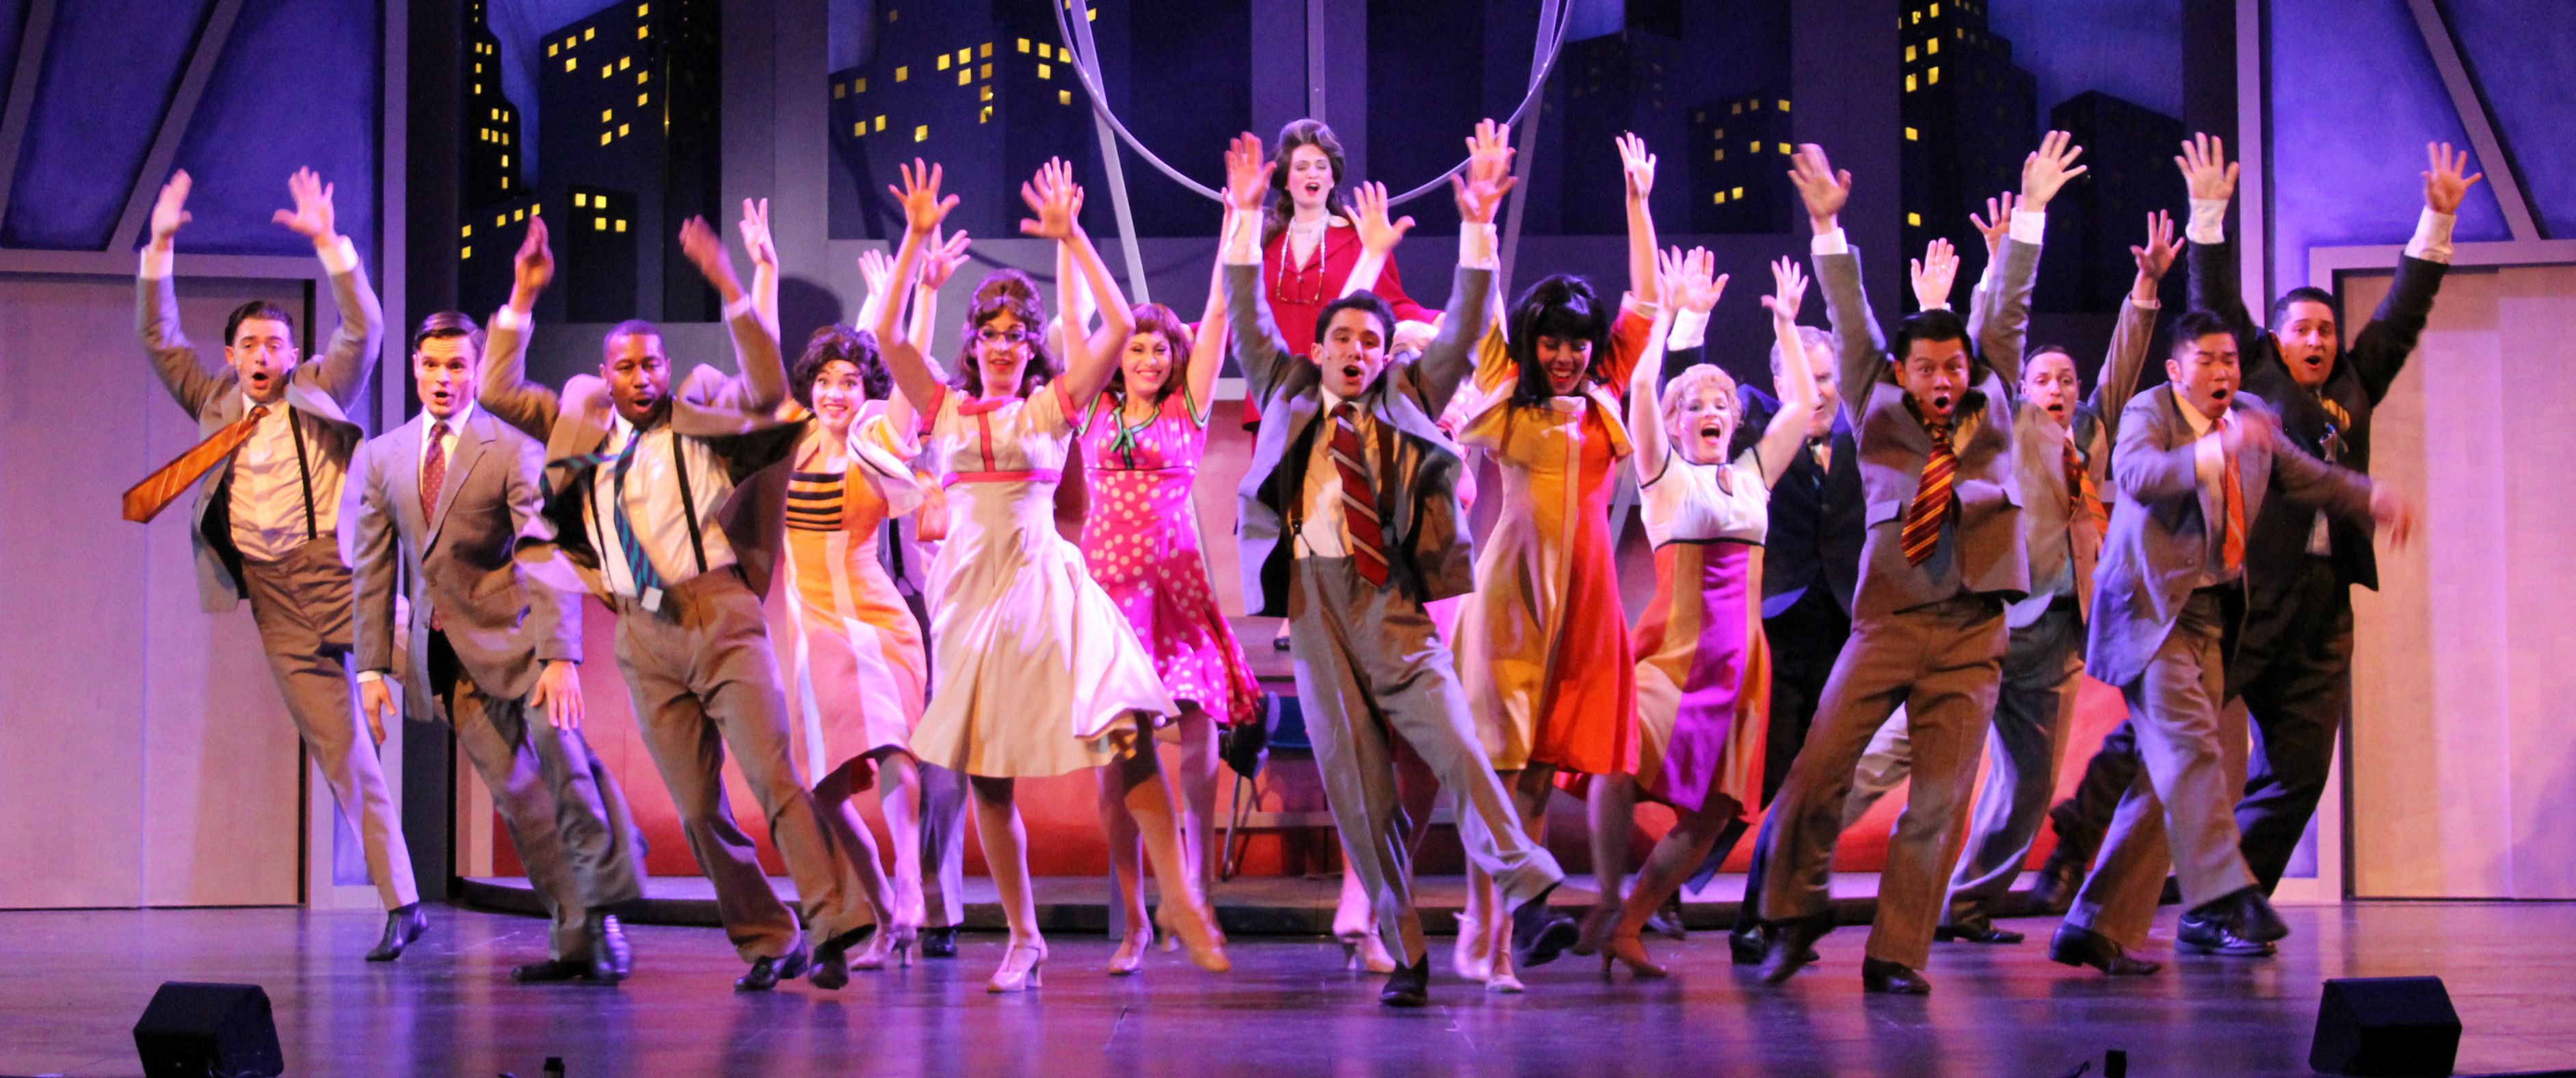 "The cast of Candlelight Pavilion's ""How to Succeed in Business without Really Trying"" celebrates ""The Brotherhood of Man"" [photo: John LaLonde]"